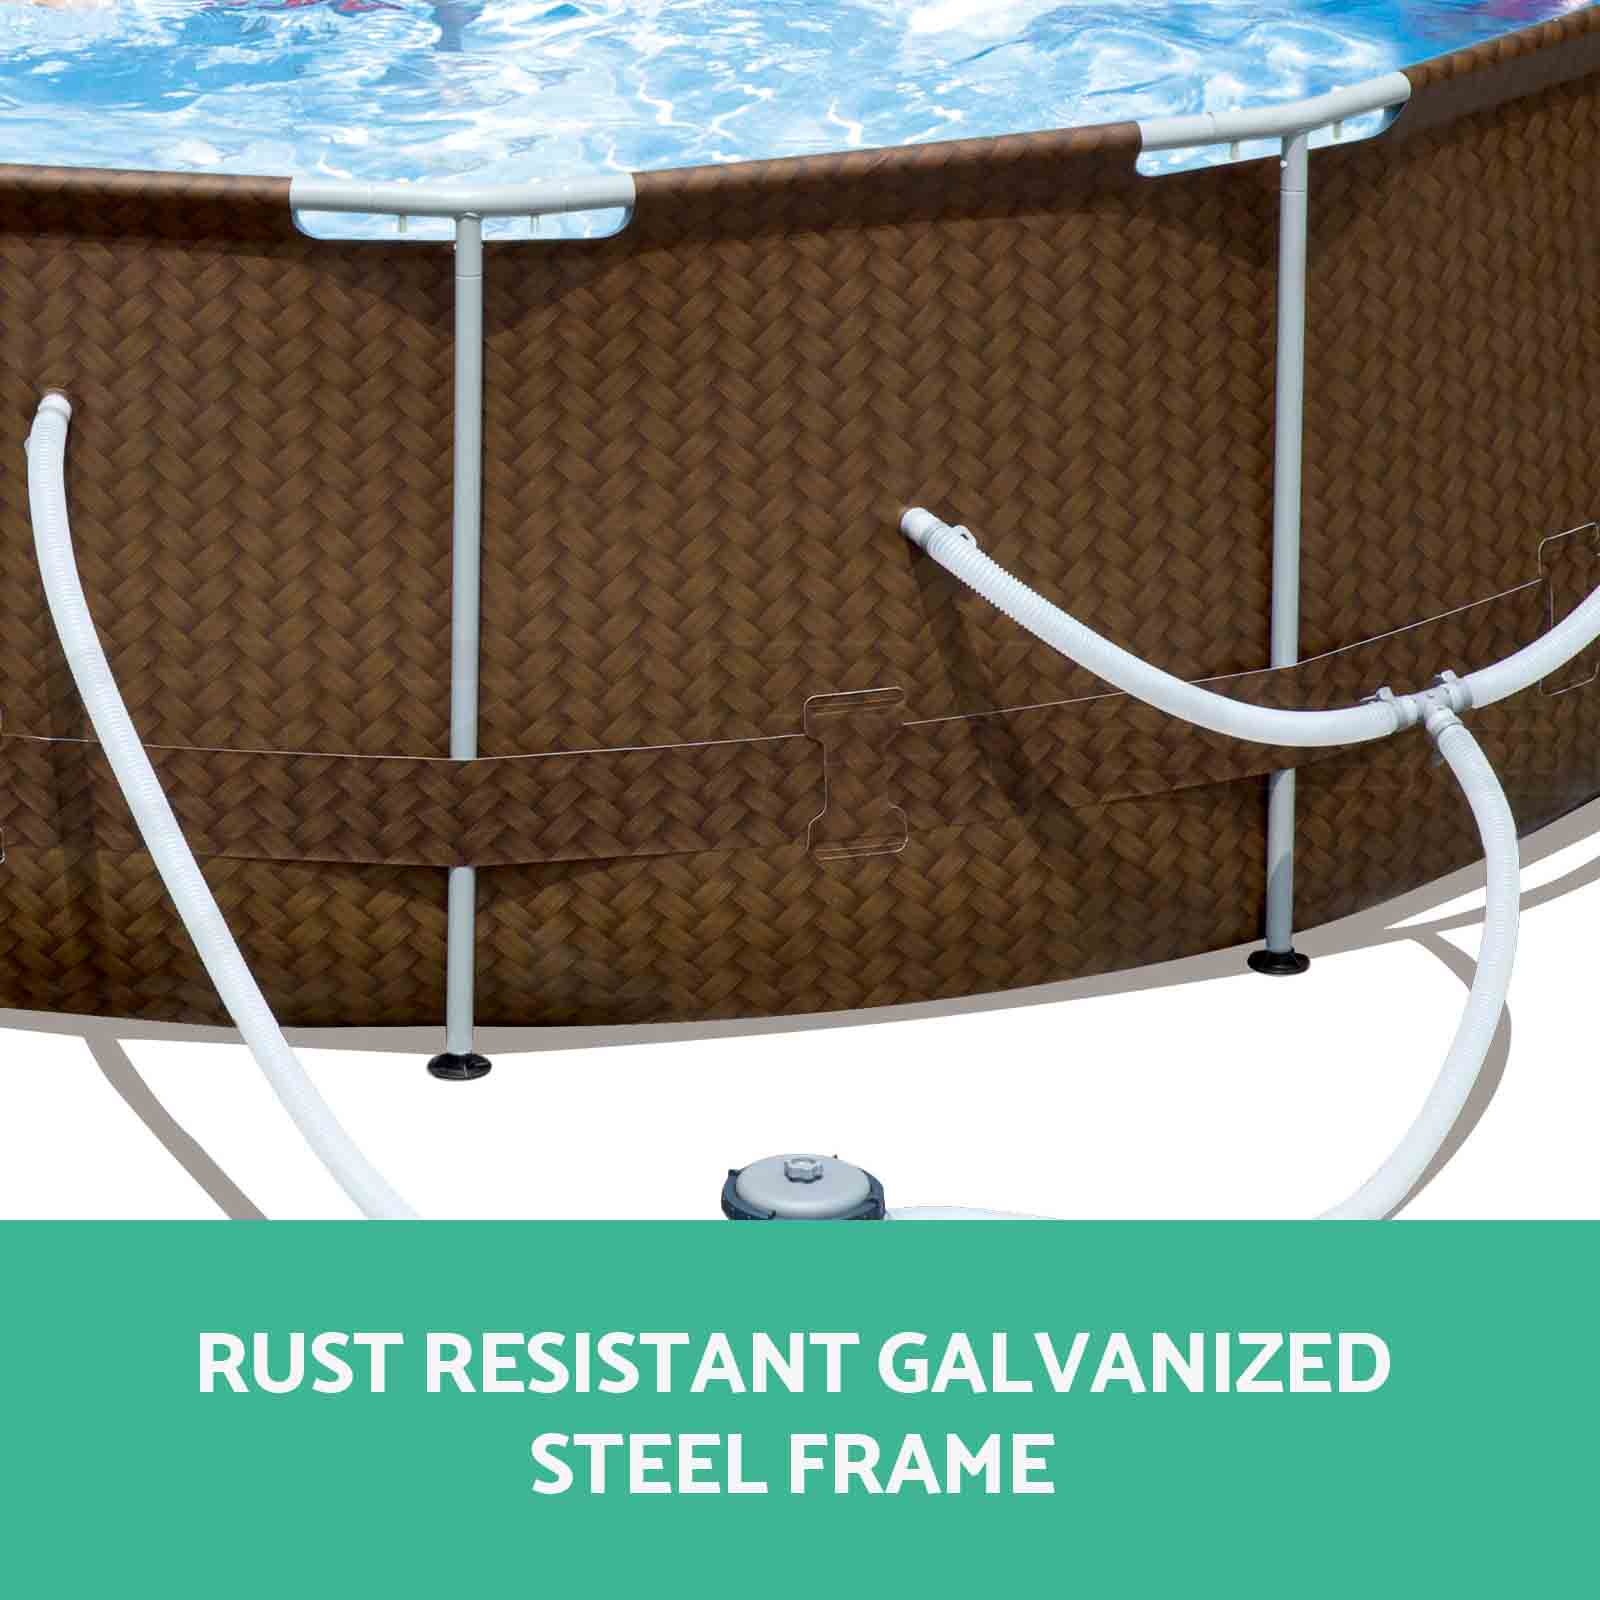 New bestway swimming pool steel pro rattan frame - Bestway steel frame swimming pool ...